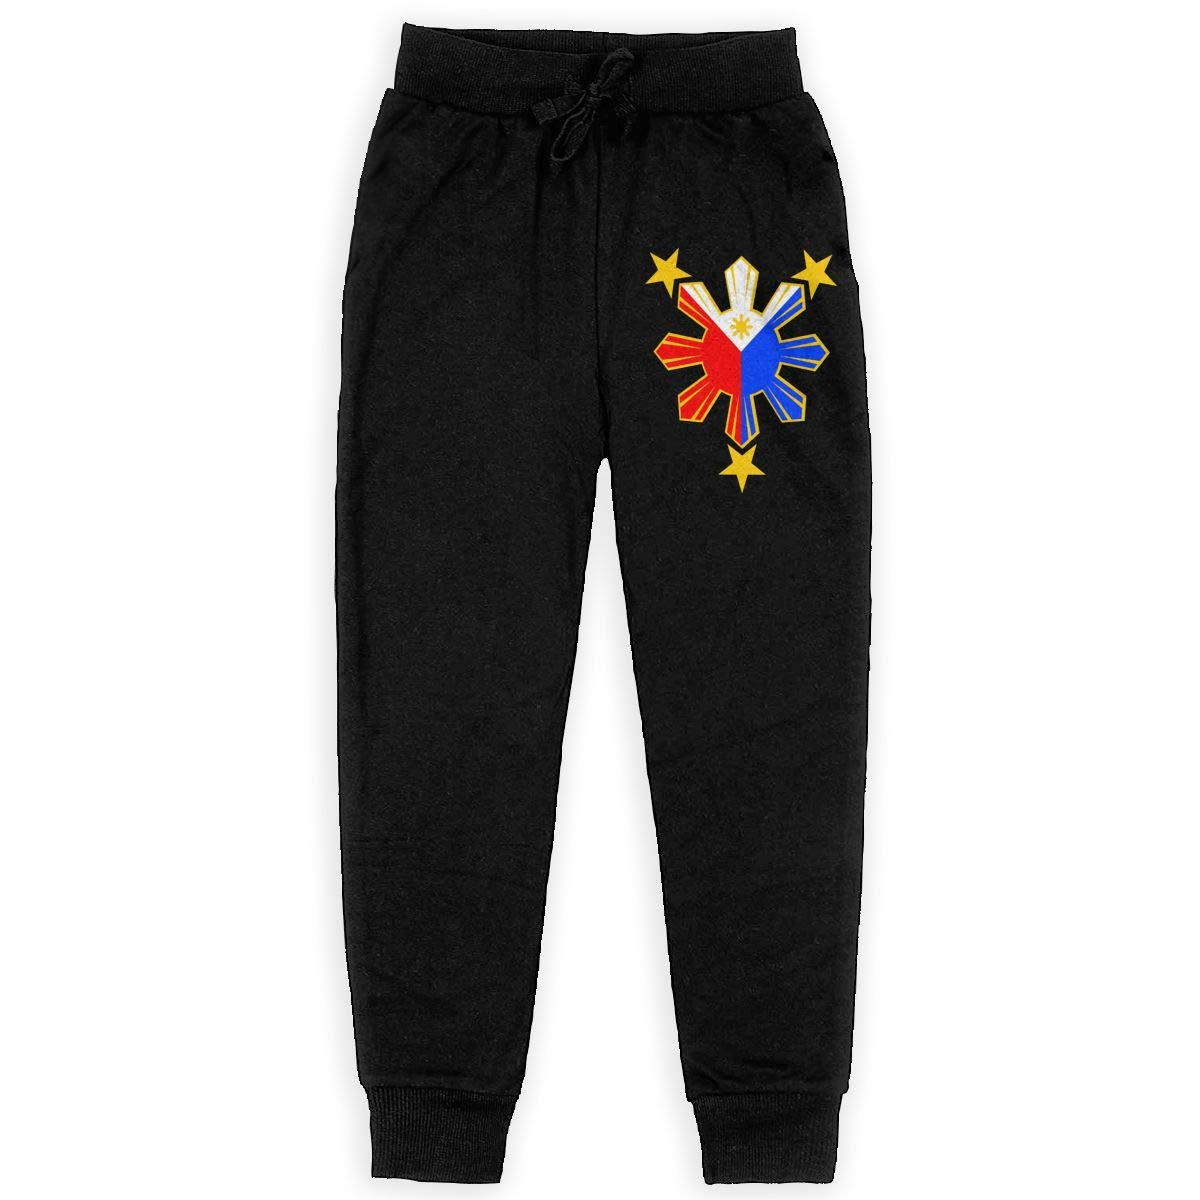 Qinf Boys Sweatpants Philippines Pride Star Flag Joggers Sport Training Pants Trousers Cotton Sweatpants for Youth